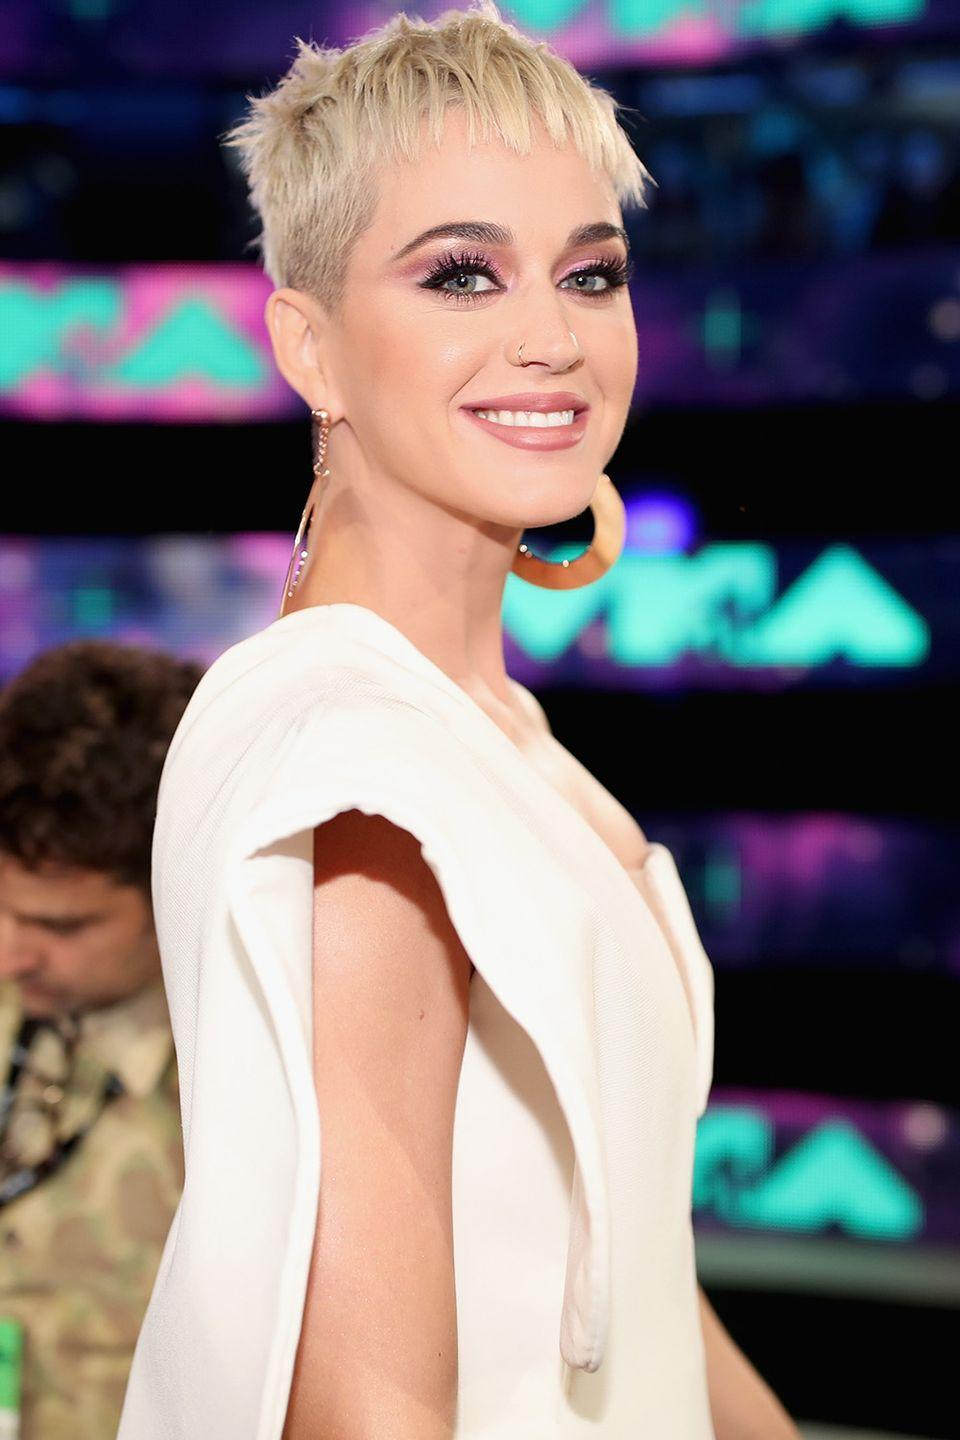 """<p><strong>Born</strong>: Katheryn Elizabeth Hudson</p><p>The """"I Kissed A Girl"""" singer explains that her stage name came about during her adolescent identity crisis. """"I created this wonderful character called Katy Perry that I very much am, and can step into all the time, but I created that character out of protection,"""" the singer told <em><a href=""""https://www.theguardian.com/music/2017/jun/11/katy-perry-interview-witness-album-glastonbury"""" rel=""""nofollow noopener"""" target=""""_blank"""" data-ylk=""""slk:The Guardian"""" class=""""link rapid-noclick-resp"""">The Guardian</a></em>. </p><p>""""It was me going, 'OK, I've been upset my whole childhood so I'm going to show the world I am something, that I am going to do something and that I am enough,'"""" Perry <a href=""""https://www.theguardian.com/music/2017/jun/11/katy-perry-interview-witness-album-glastonbury"""" rel=""""nofollow noopener"""" target=""""_blank"""" data-ylk=""""slk:continued"""" class=""""link rapid-noclick-resp"""">continued</a>. """"I didn't want to be Katheryn Hudson. I hated that, it was too scary for me, so I decided to be someone else.""""</p>"""